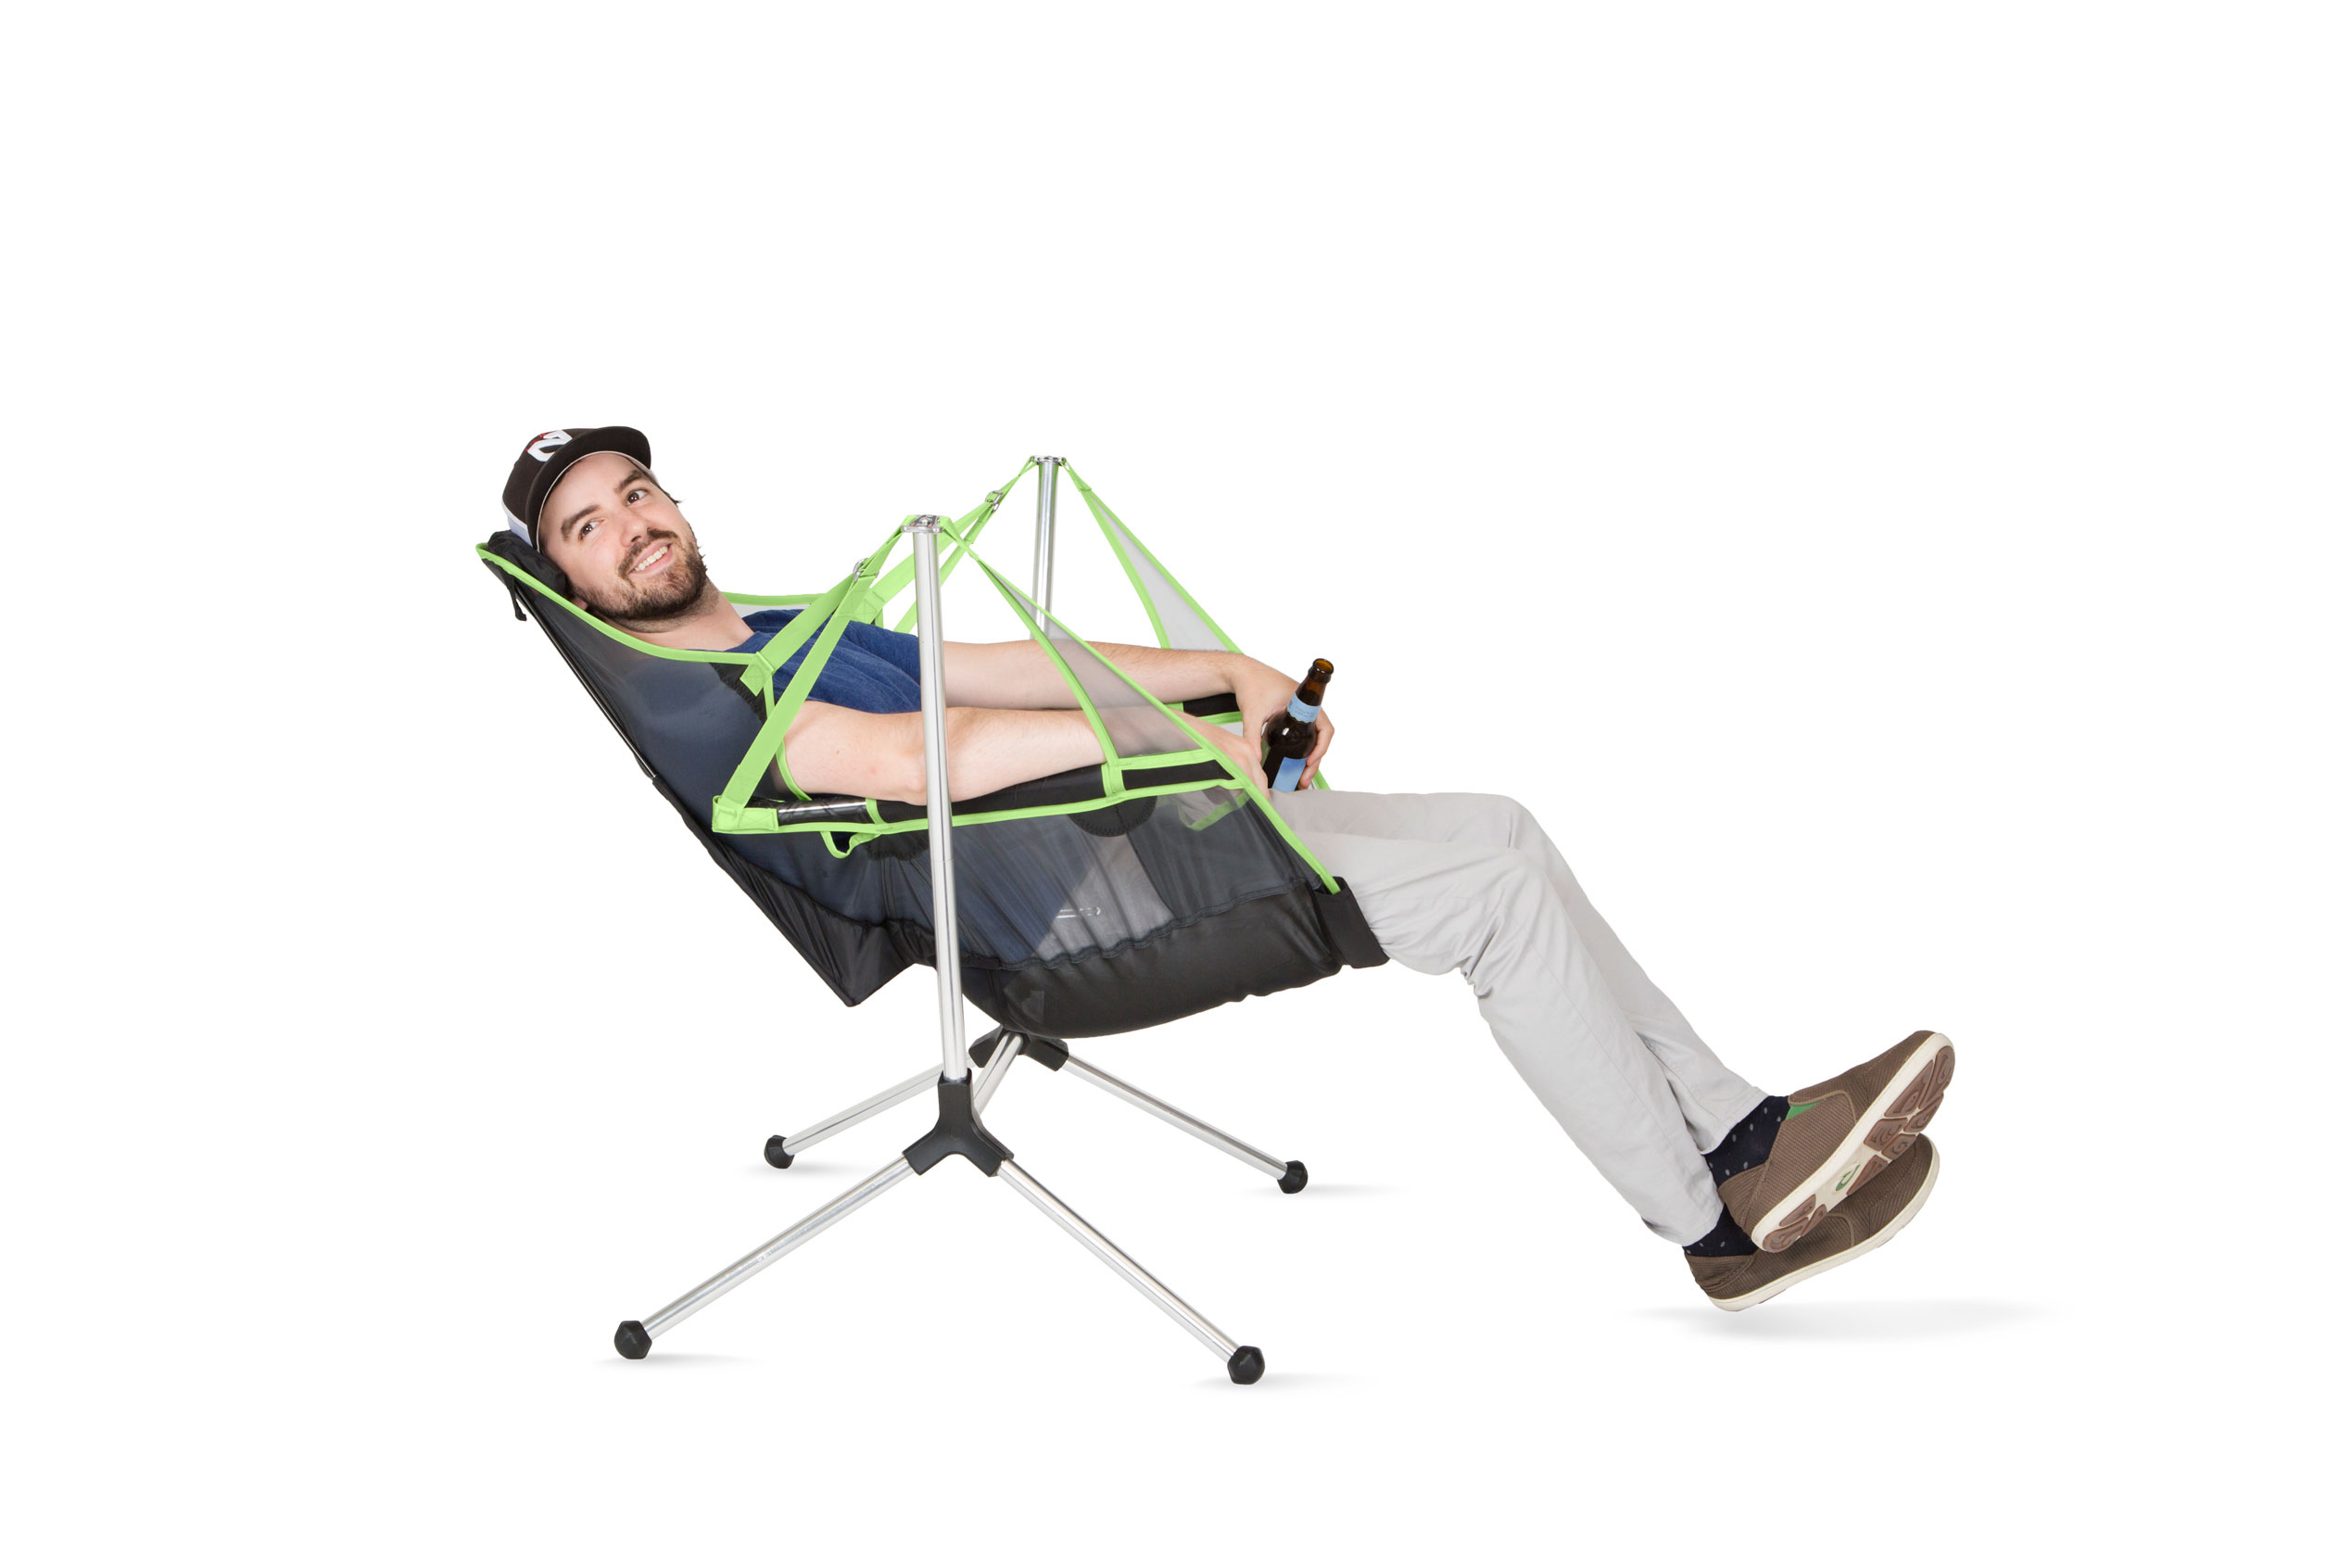 The First Ever Swinging And Reclining Camp Chair Hits The Market Today |  Business Wire